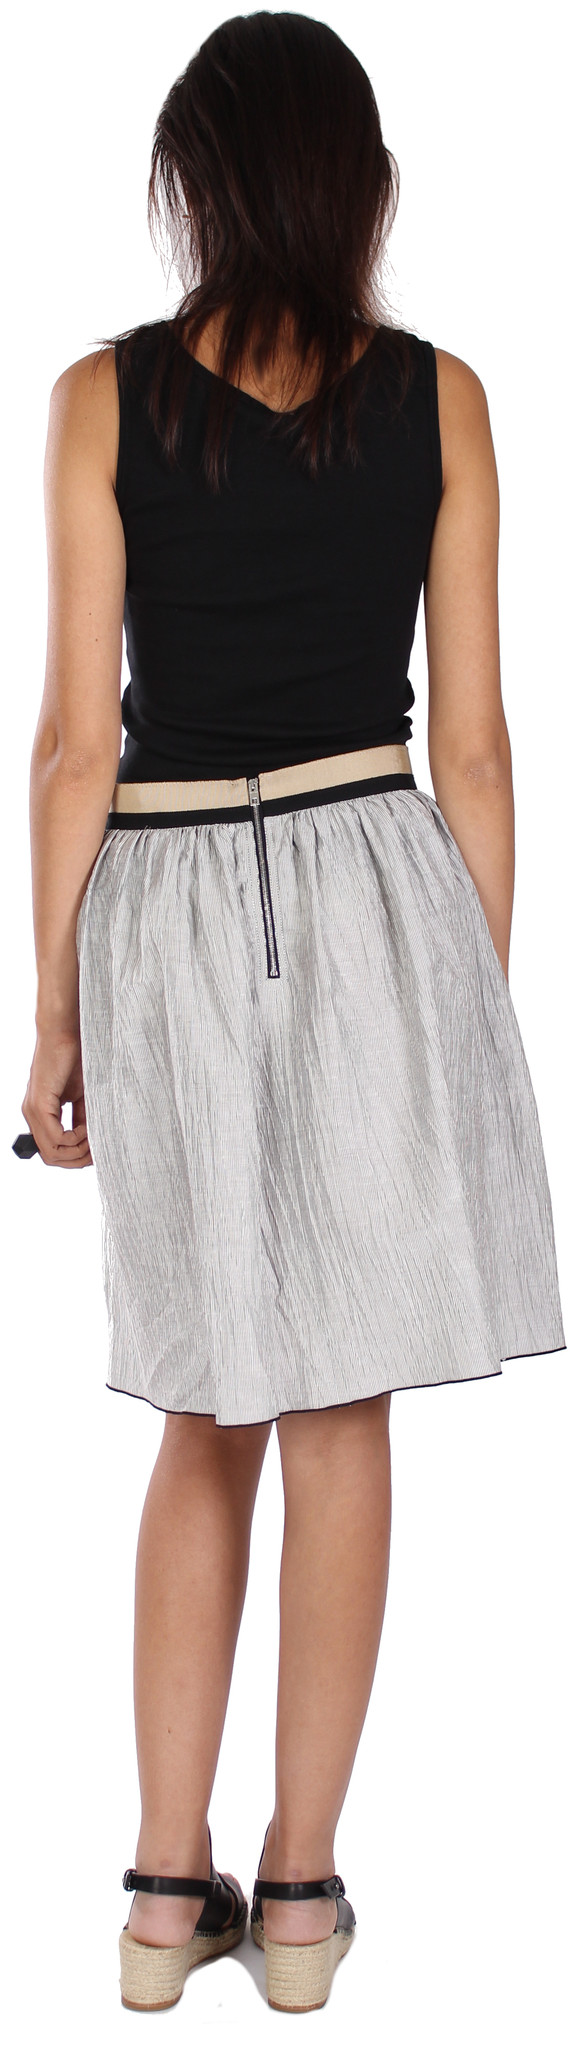 Rag & Bone Svea Skirt